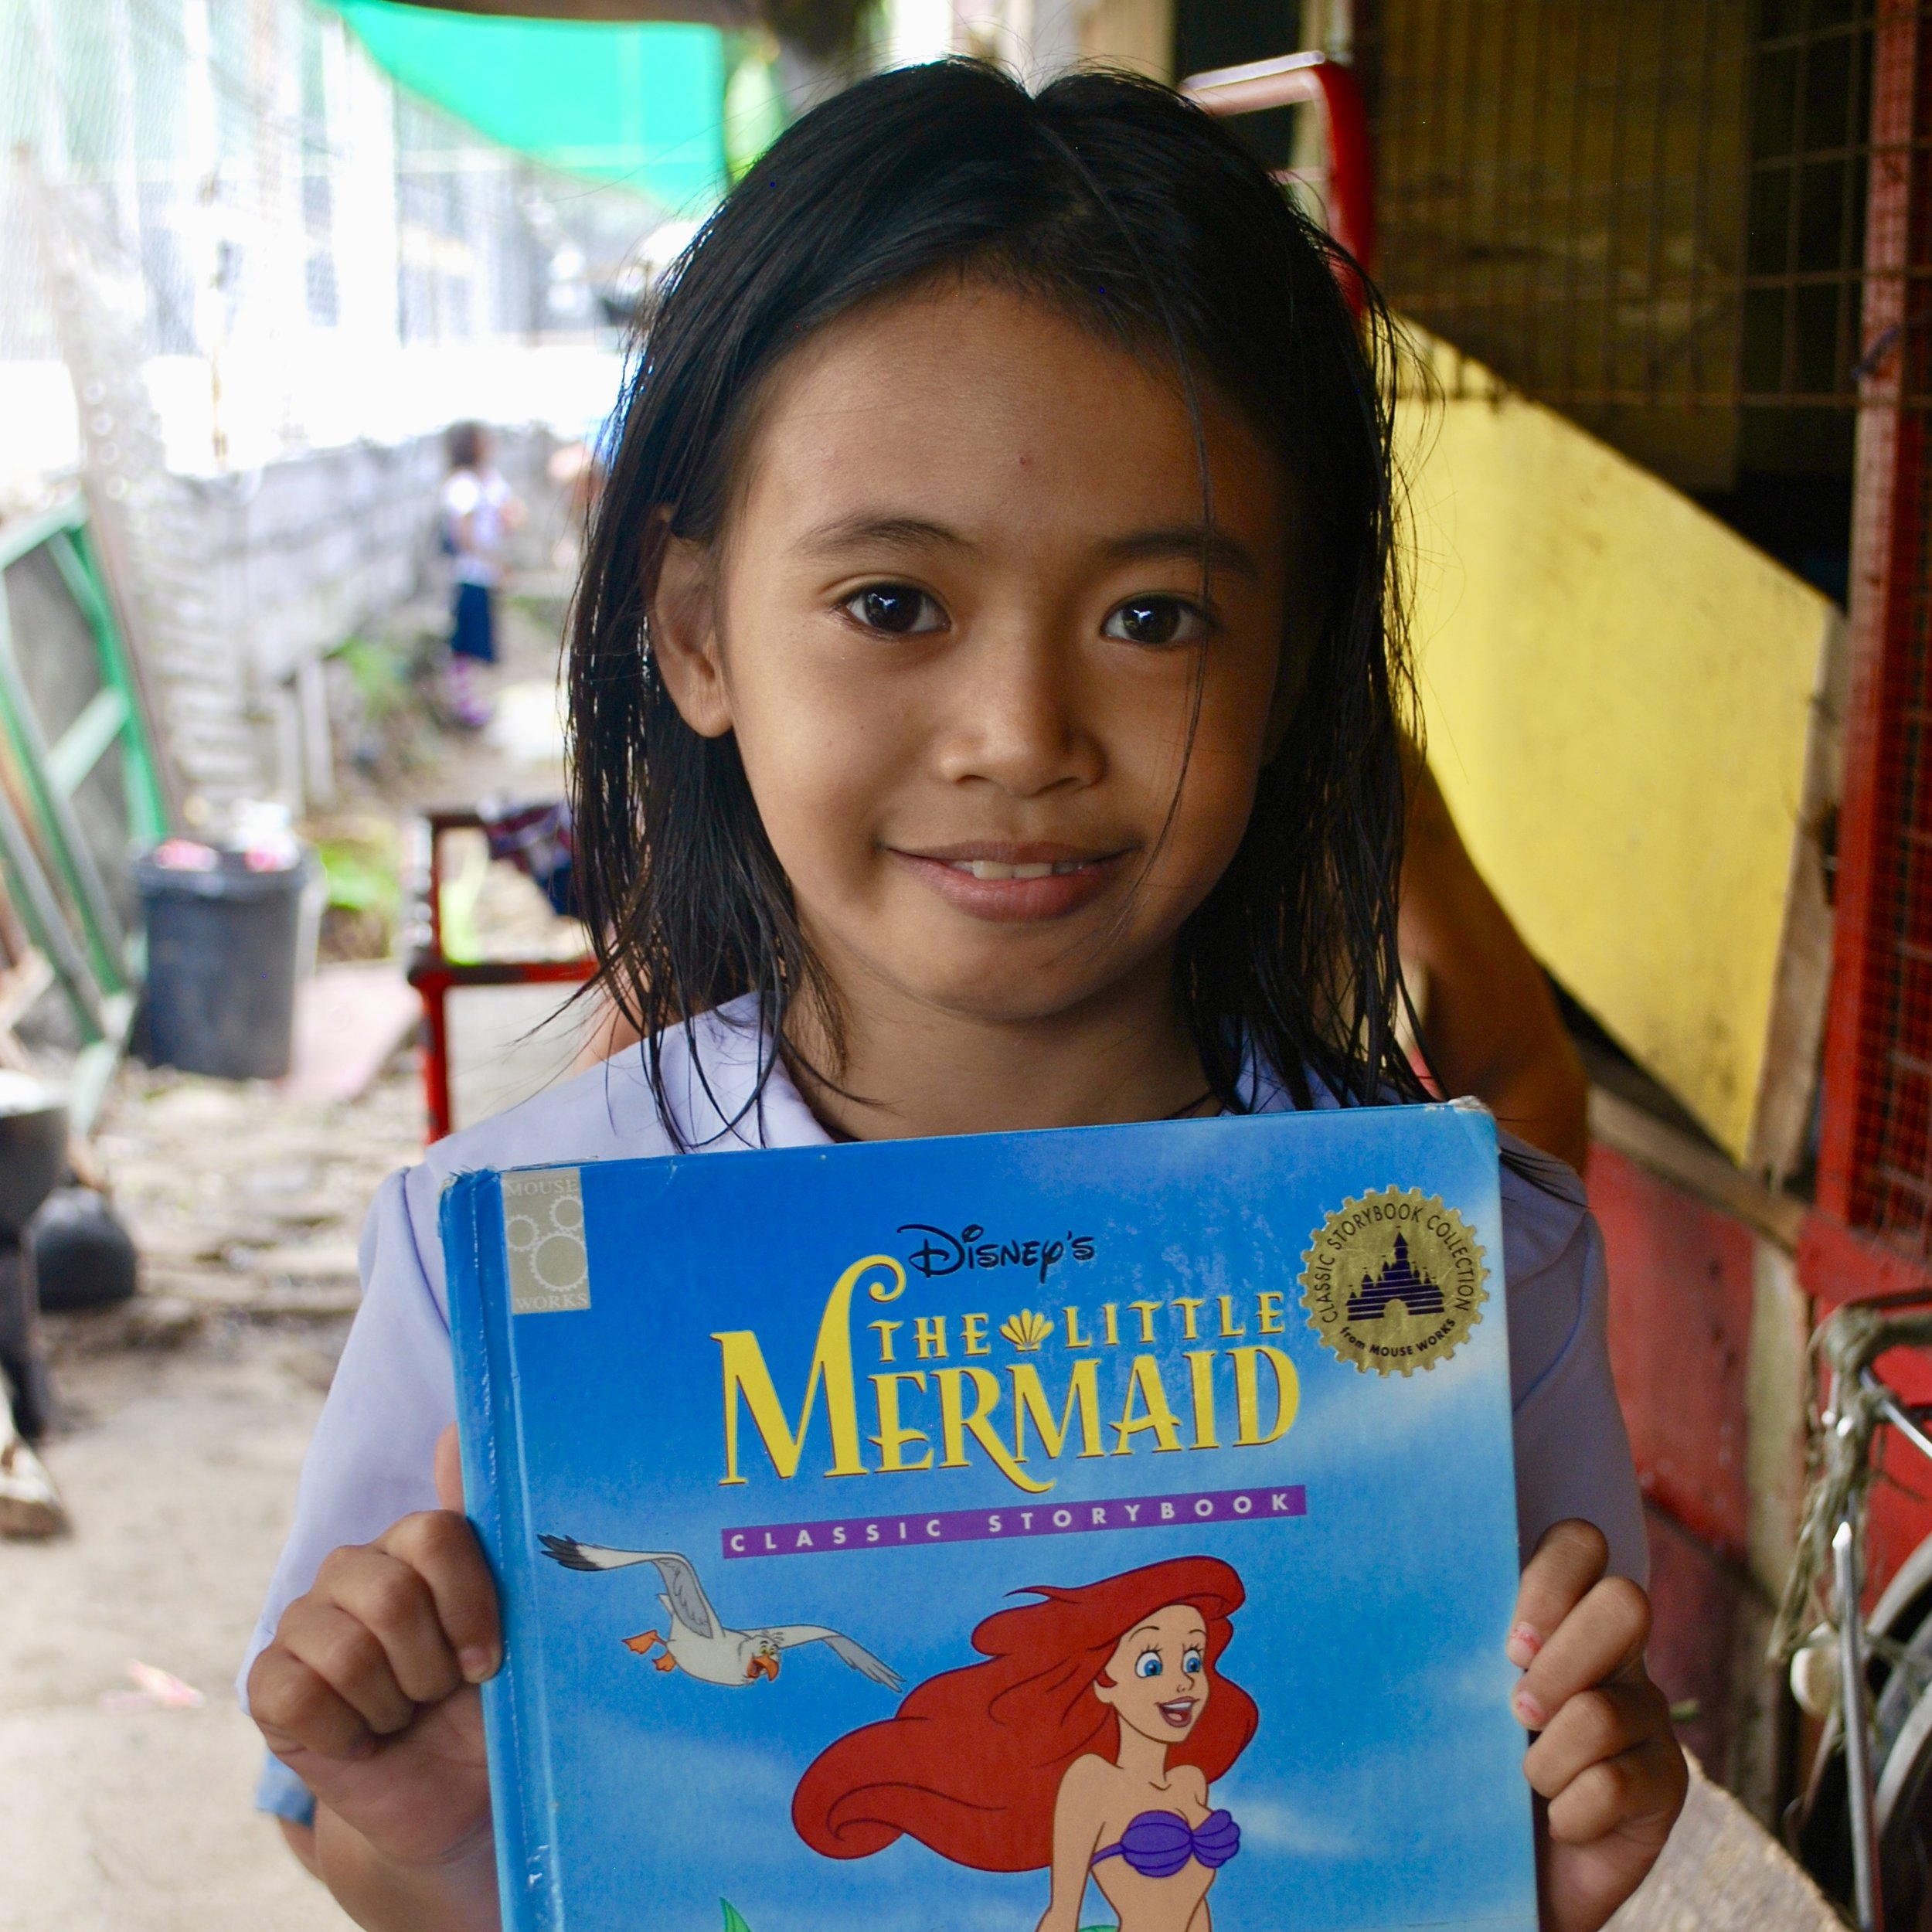 Read Along - We are a big supporter of learning through reading among the children of our community and as such we accept books for them to explore new adventures.